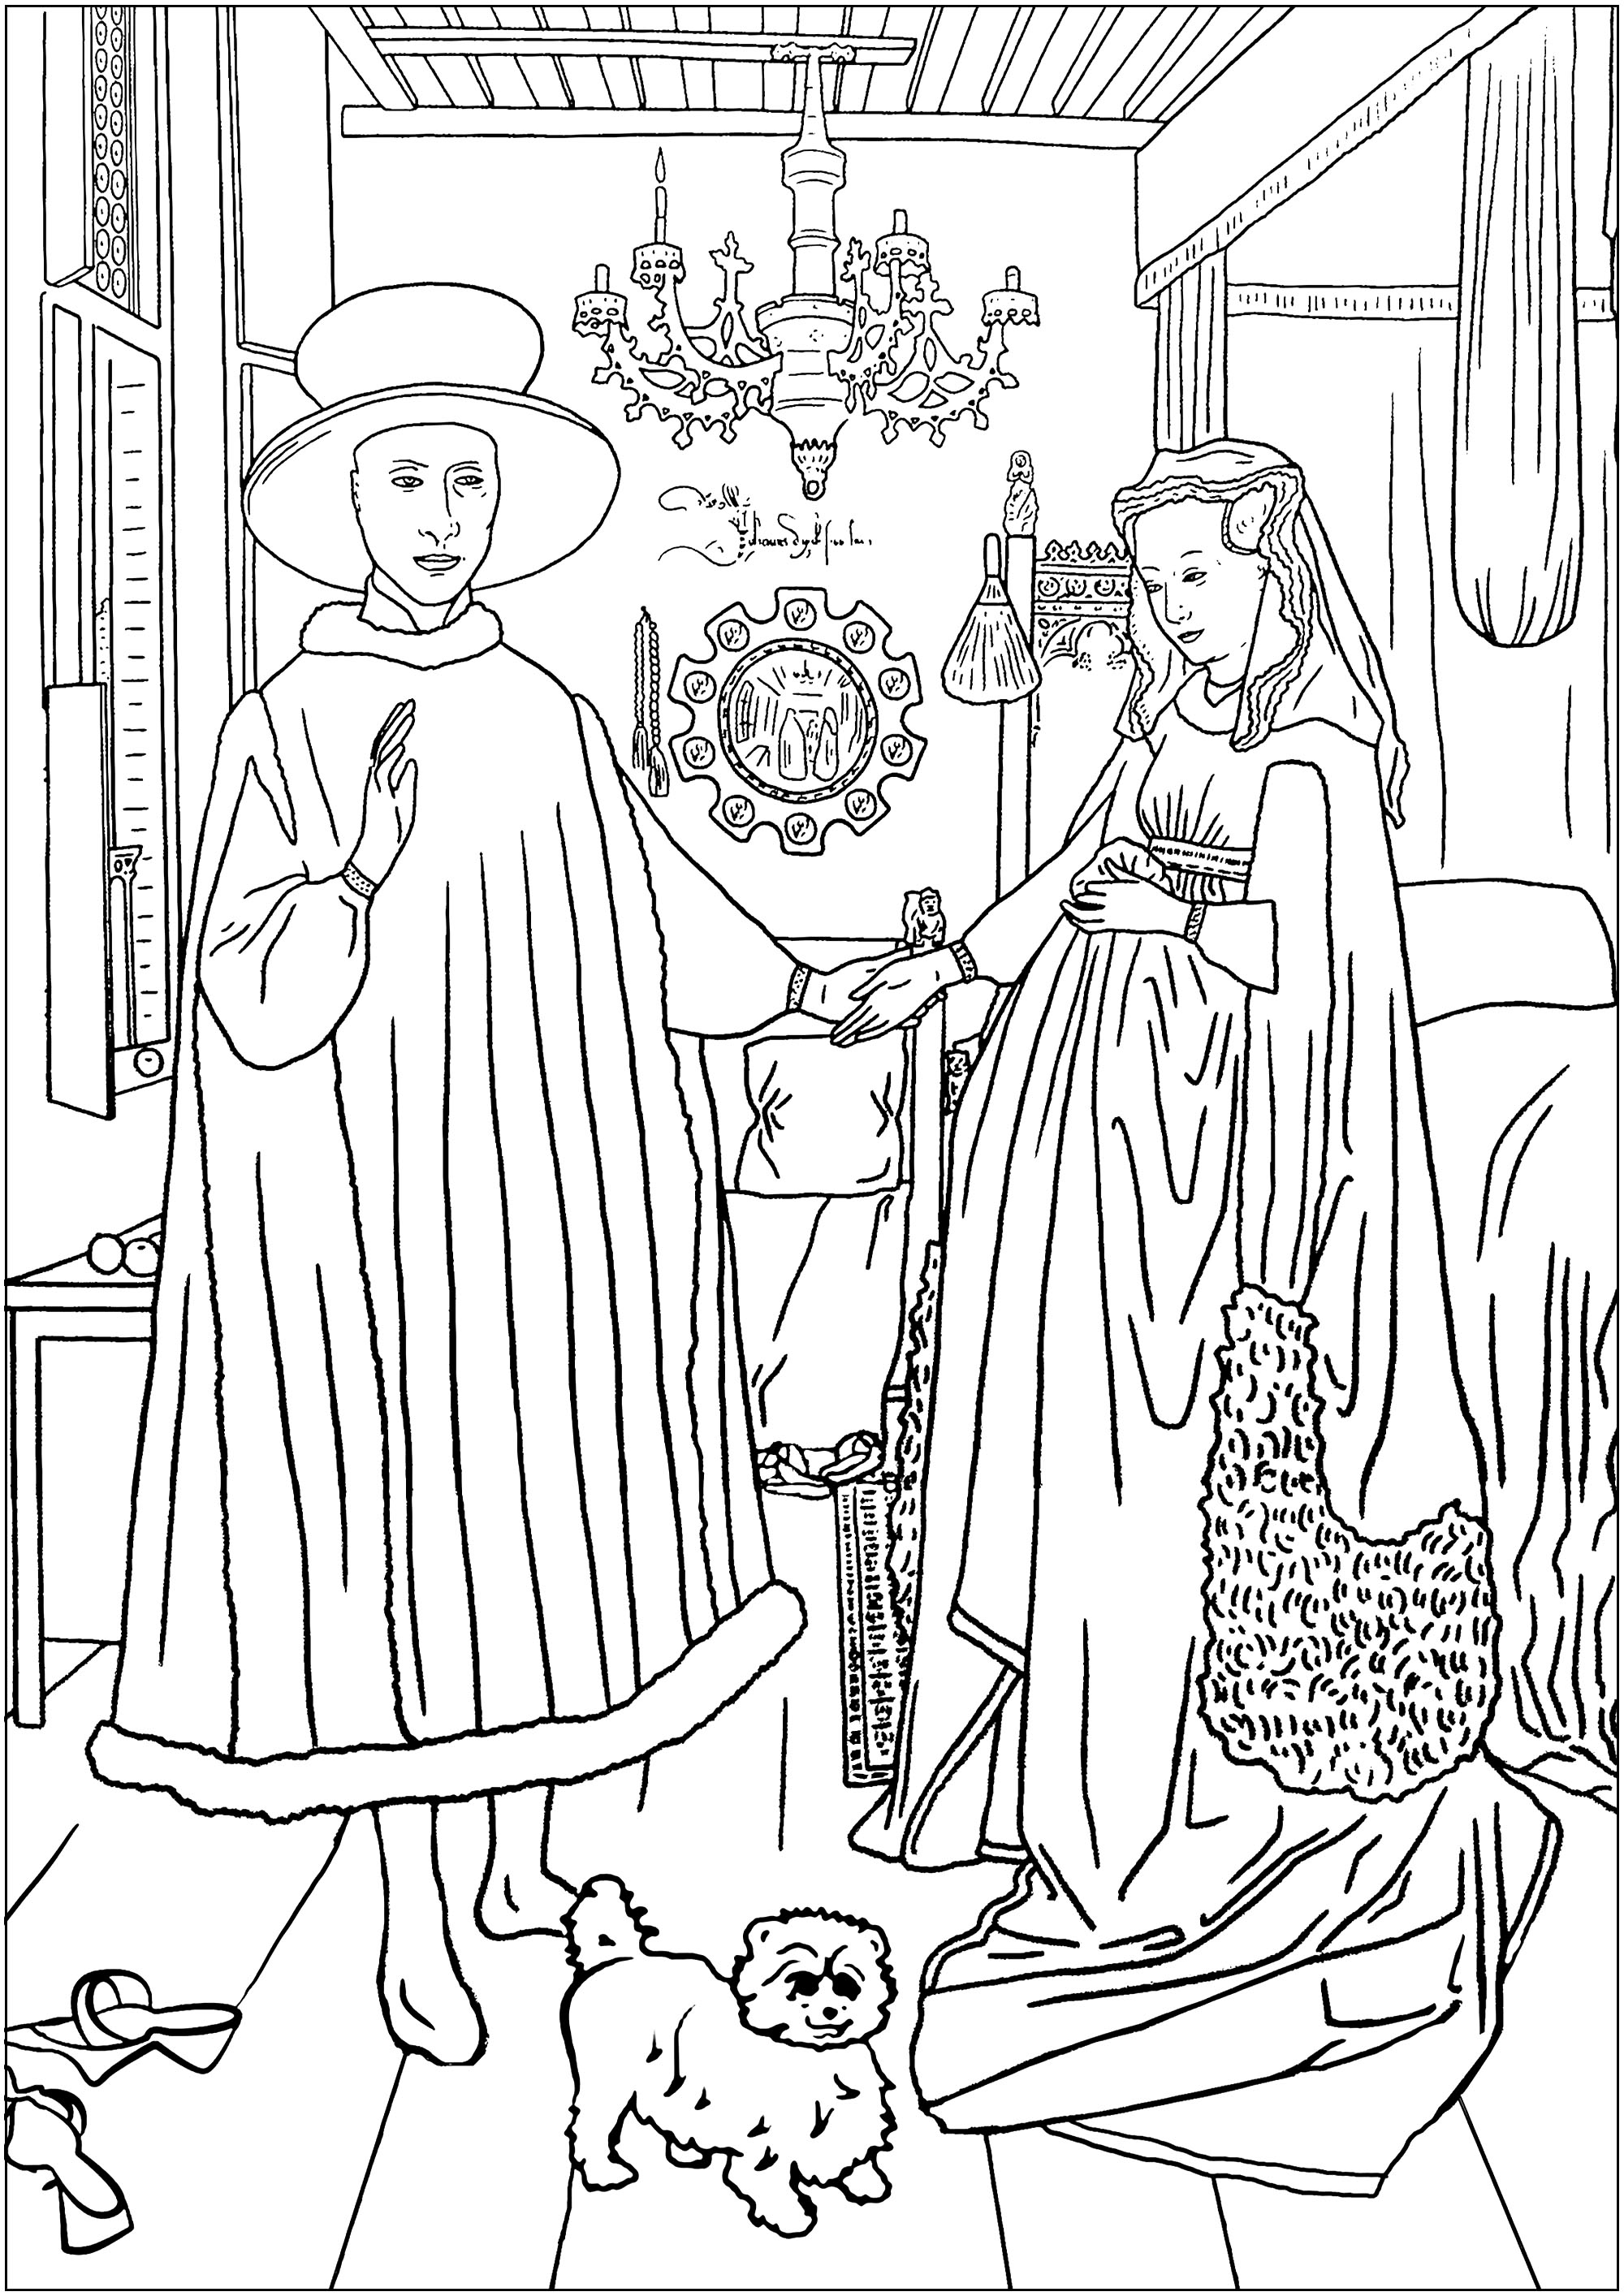 masterpiece coloring pages art masterpieces coloring pages coloring pages masterpiece coloring pages